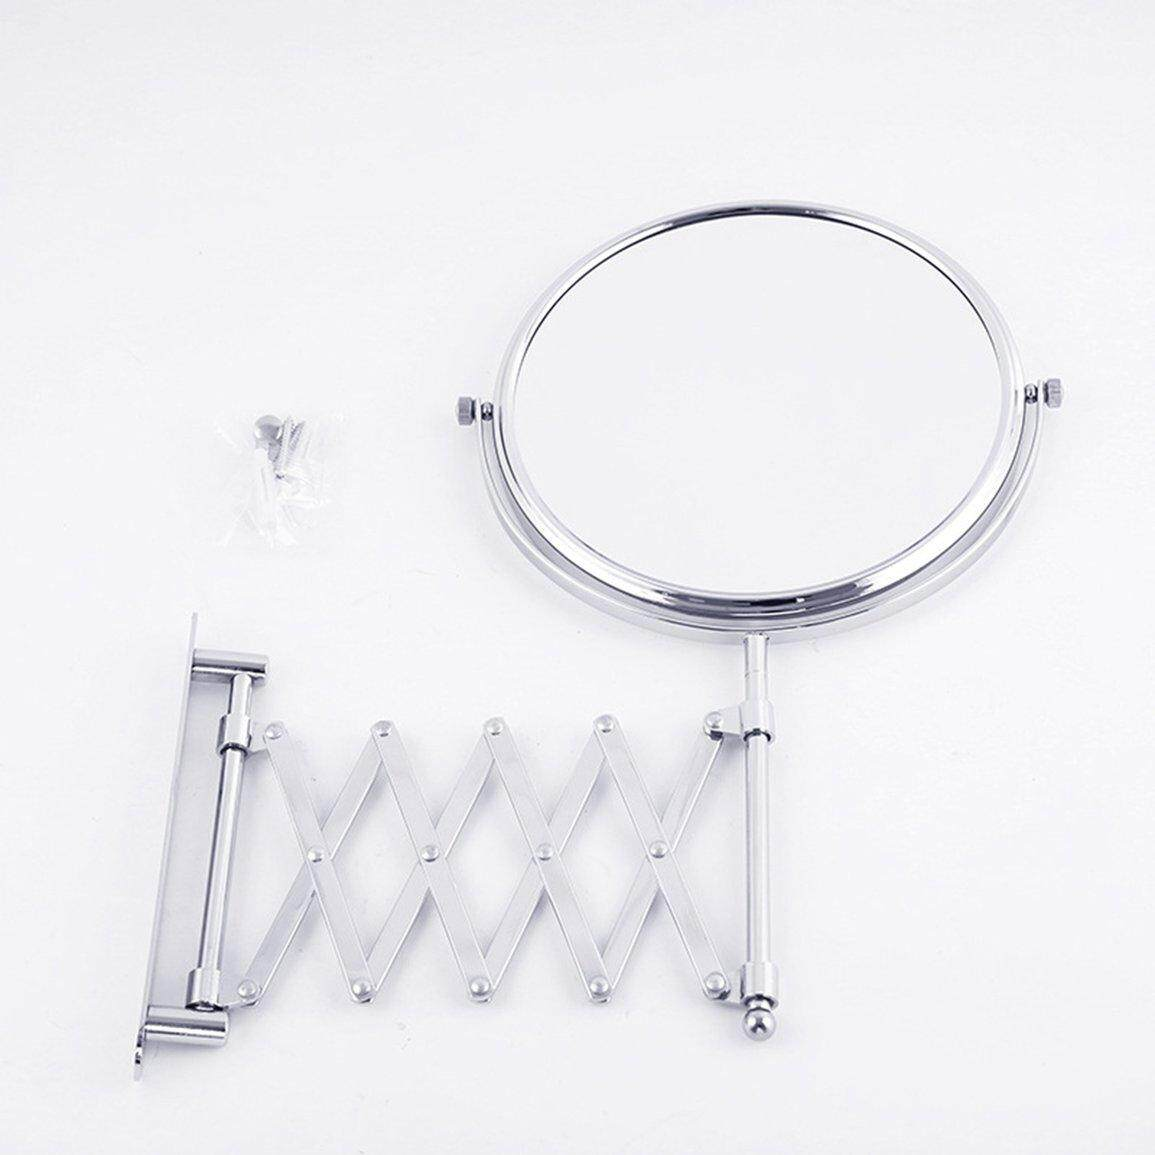 Best Sales Telescopic Wall Mirror Home Hotel Metal Folding Mirror Generation Mirror